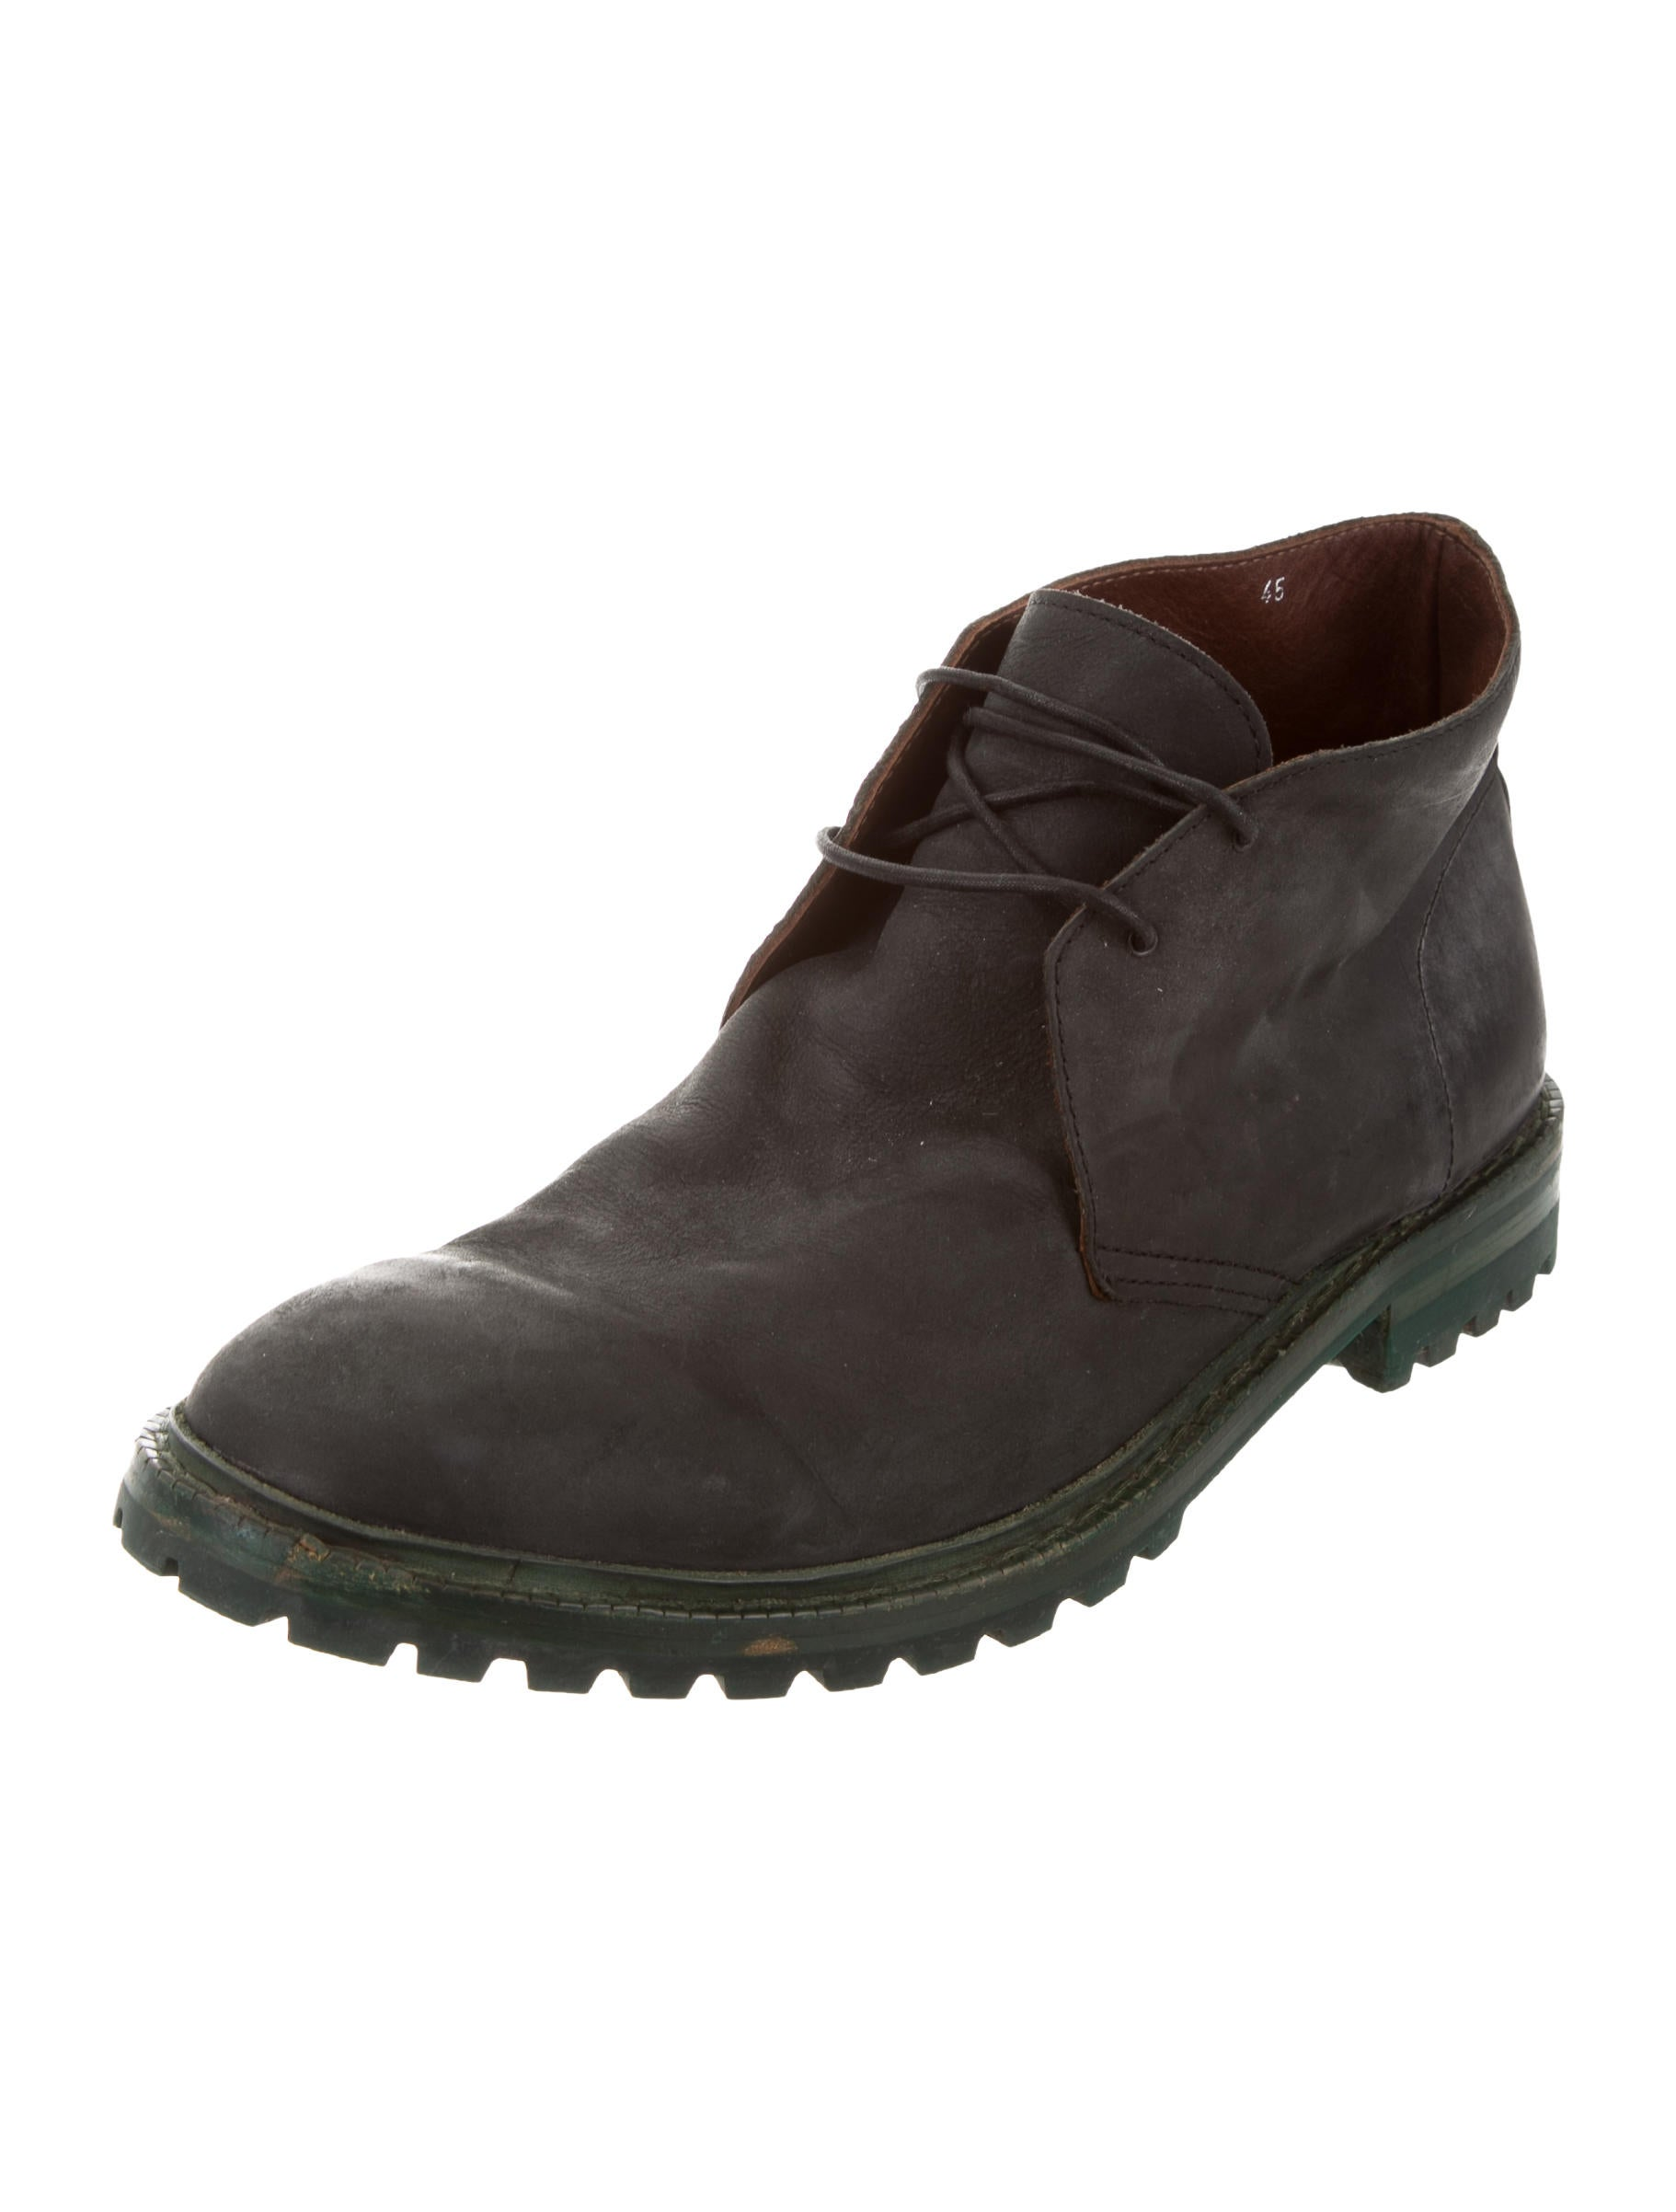 Clarks Nubuck Mens with FREE Shipping & Exchanges, and a % price guarantee. Choose from a huge selection of Clarks Nubuck Mens styles.